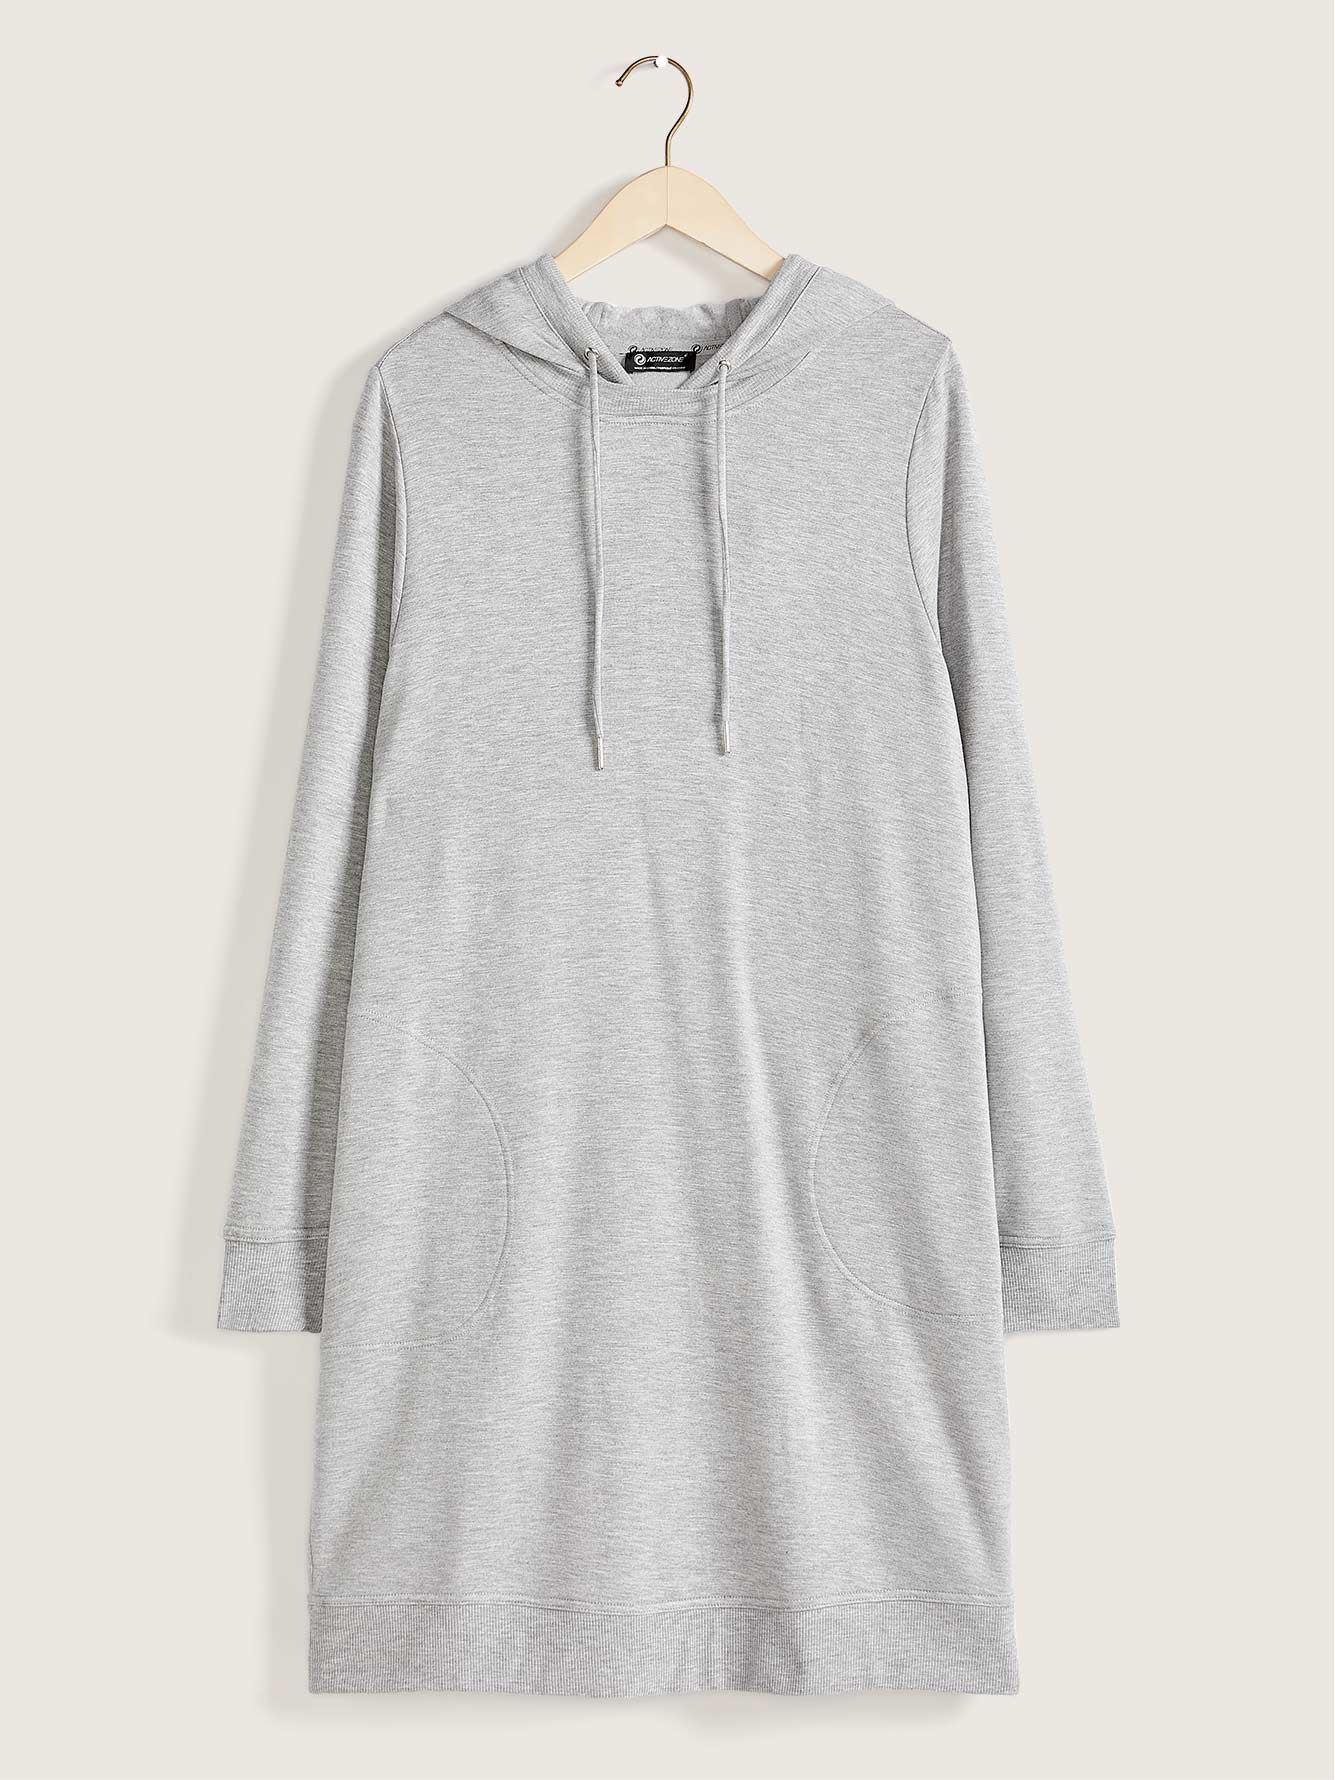 French Terry Hooded Dress - Active Zone